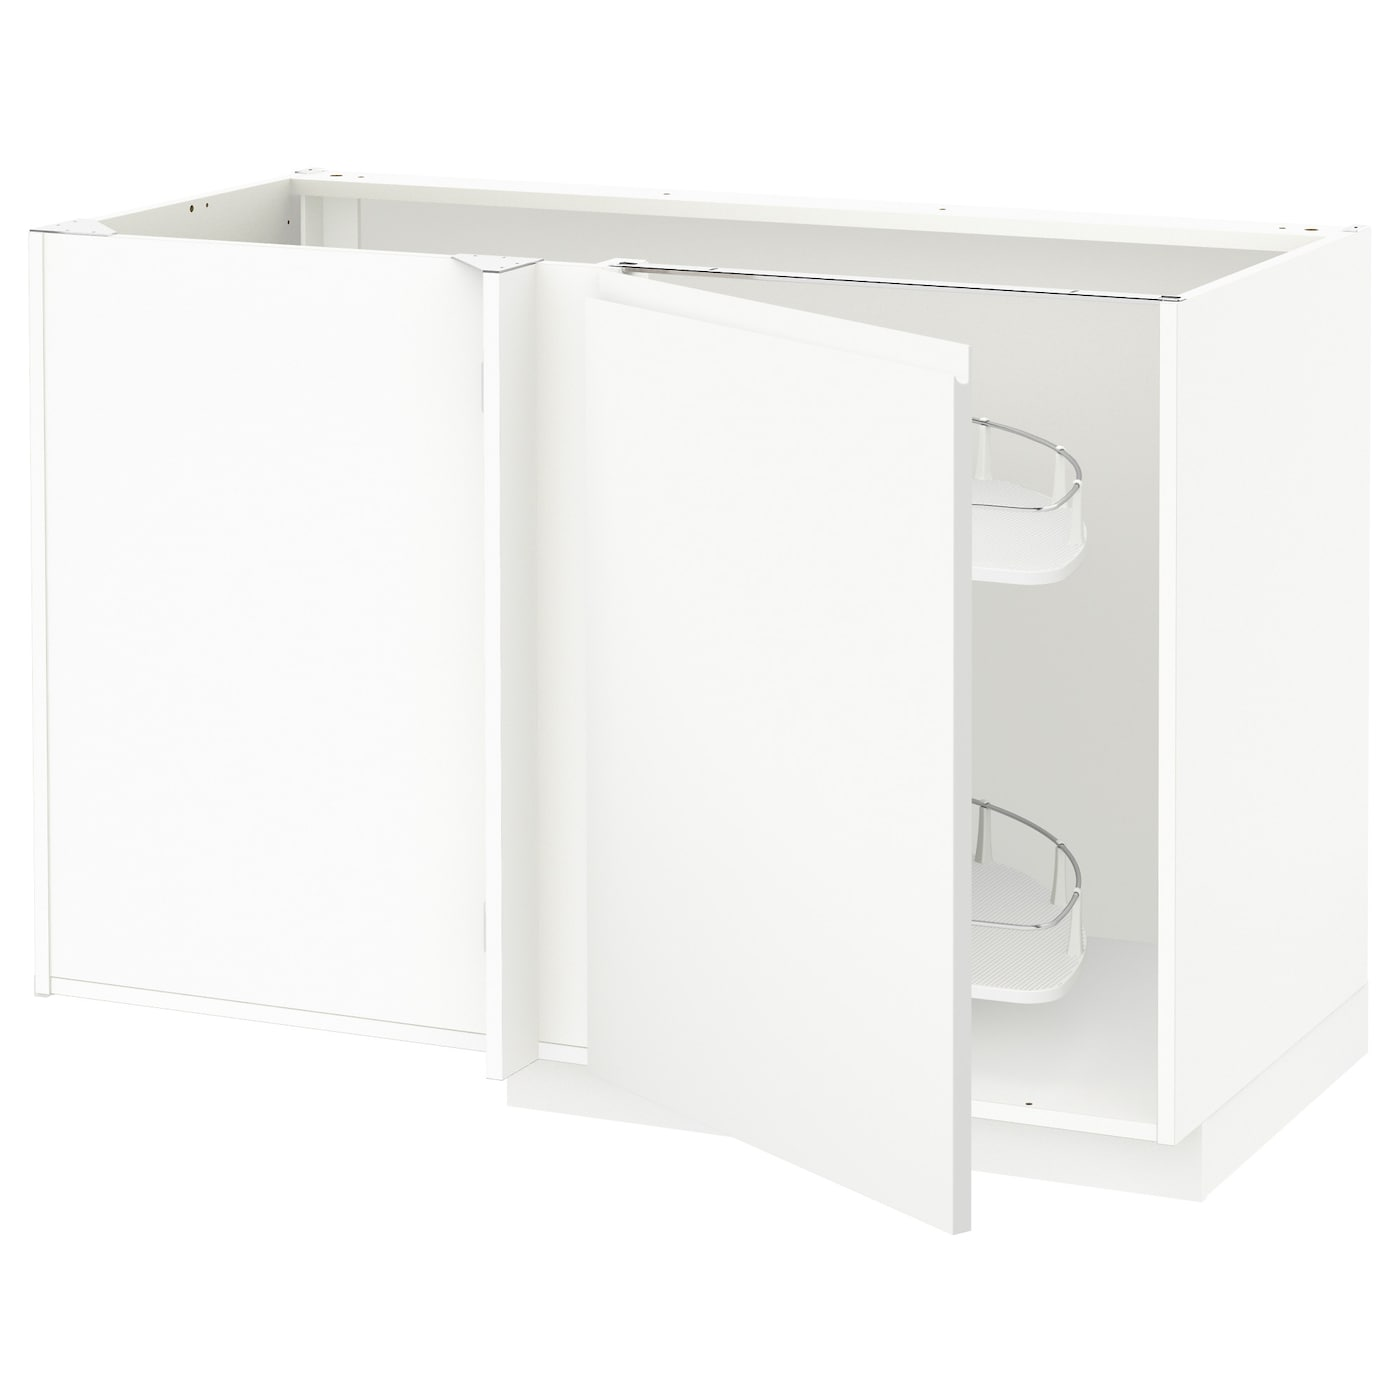 Pull Out Kitchen Shelves Ikea: METOD Corner Base Cab W Pull-out Fitting White/voxtorp